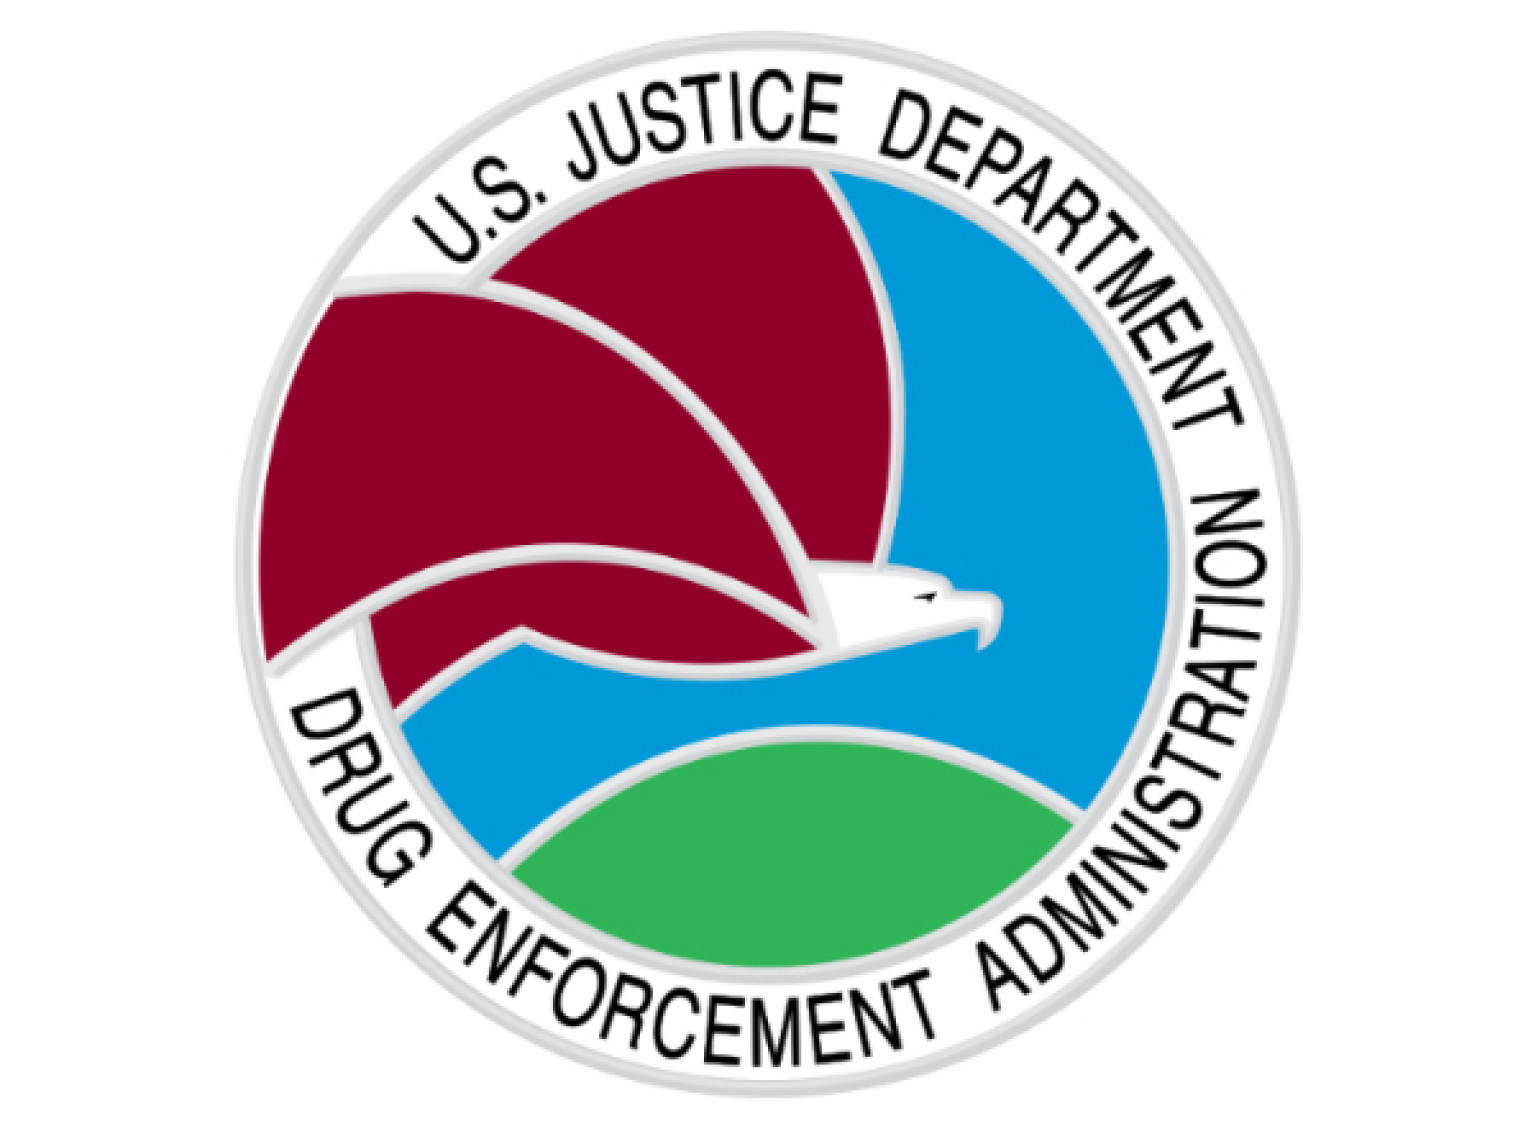 drug agents use vast phone trove eclipsing n s a s